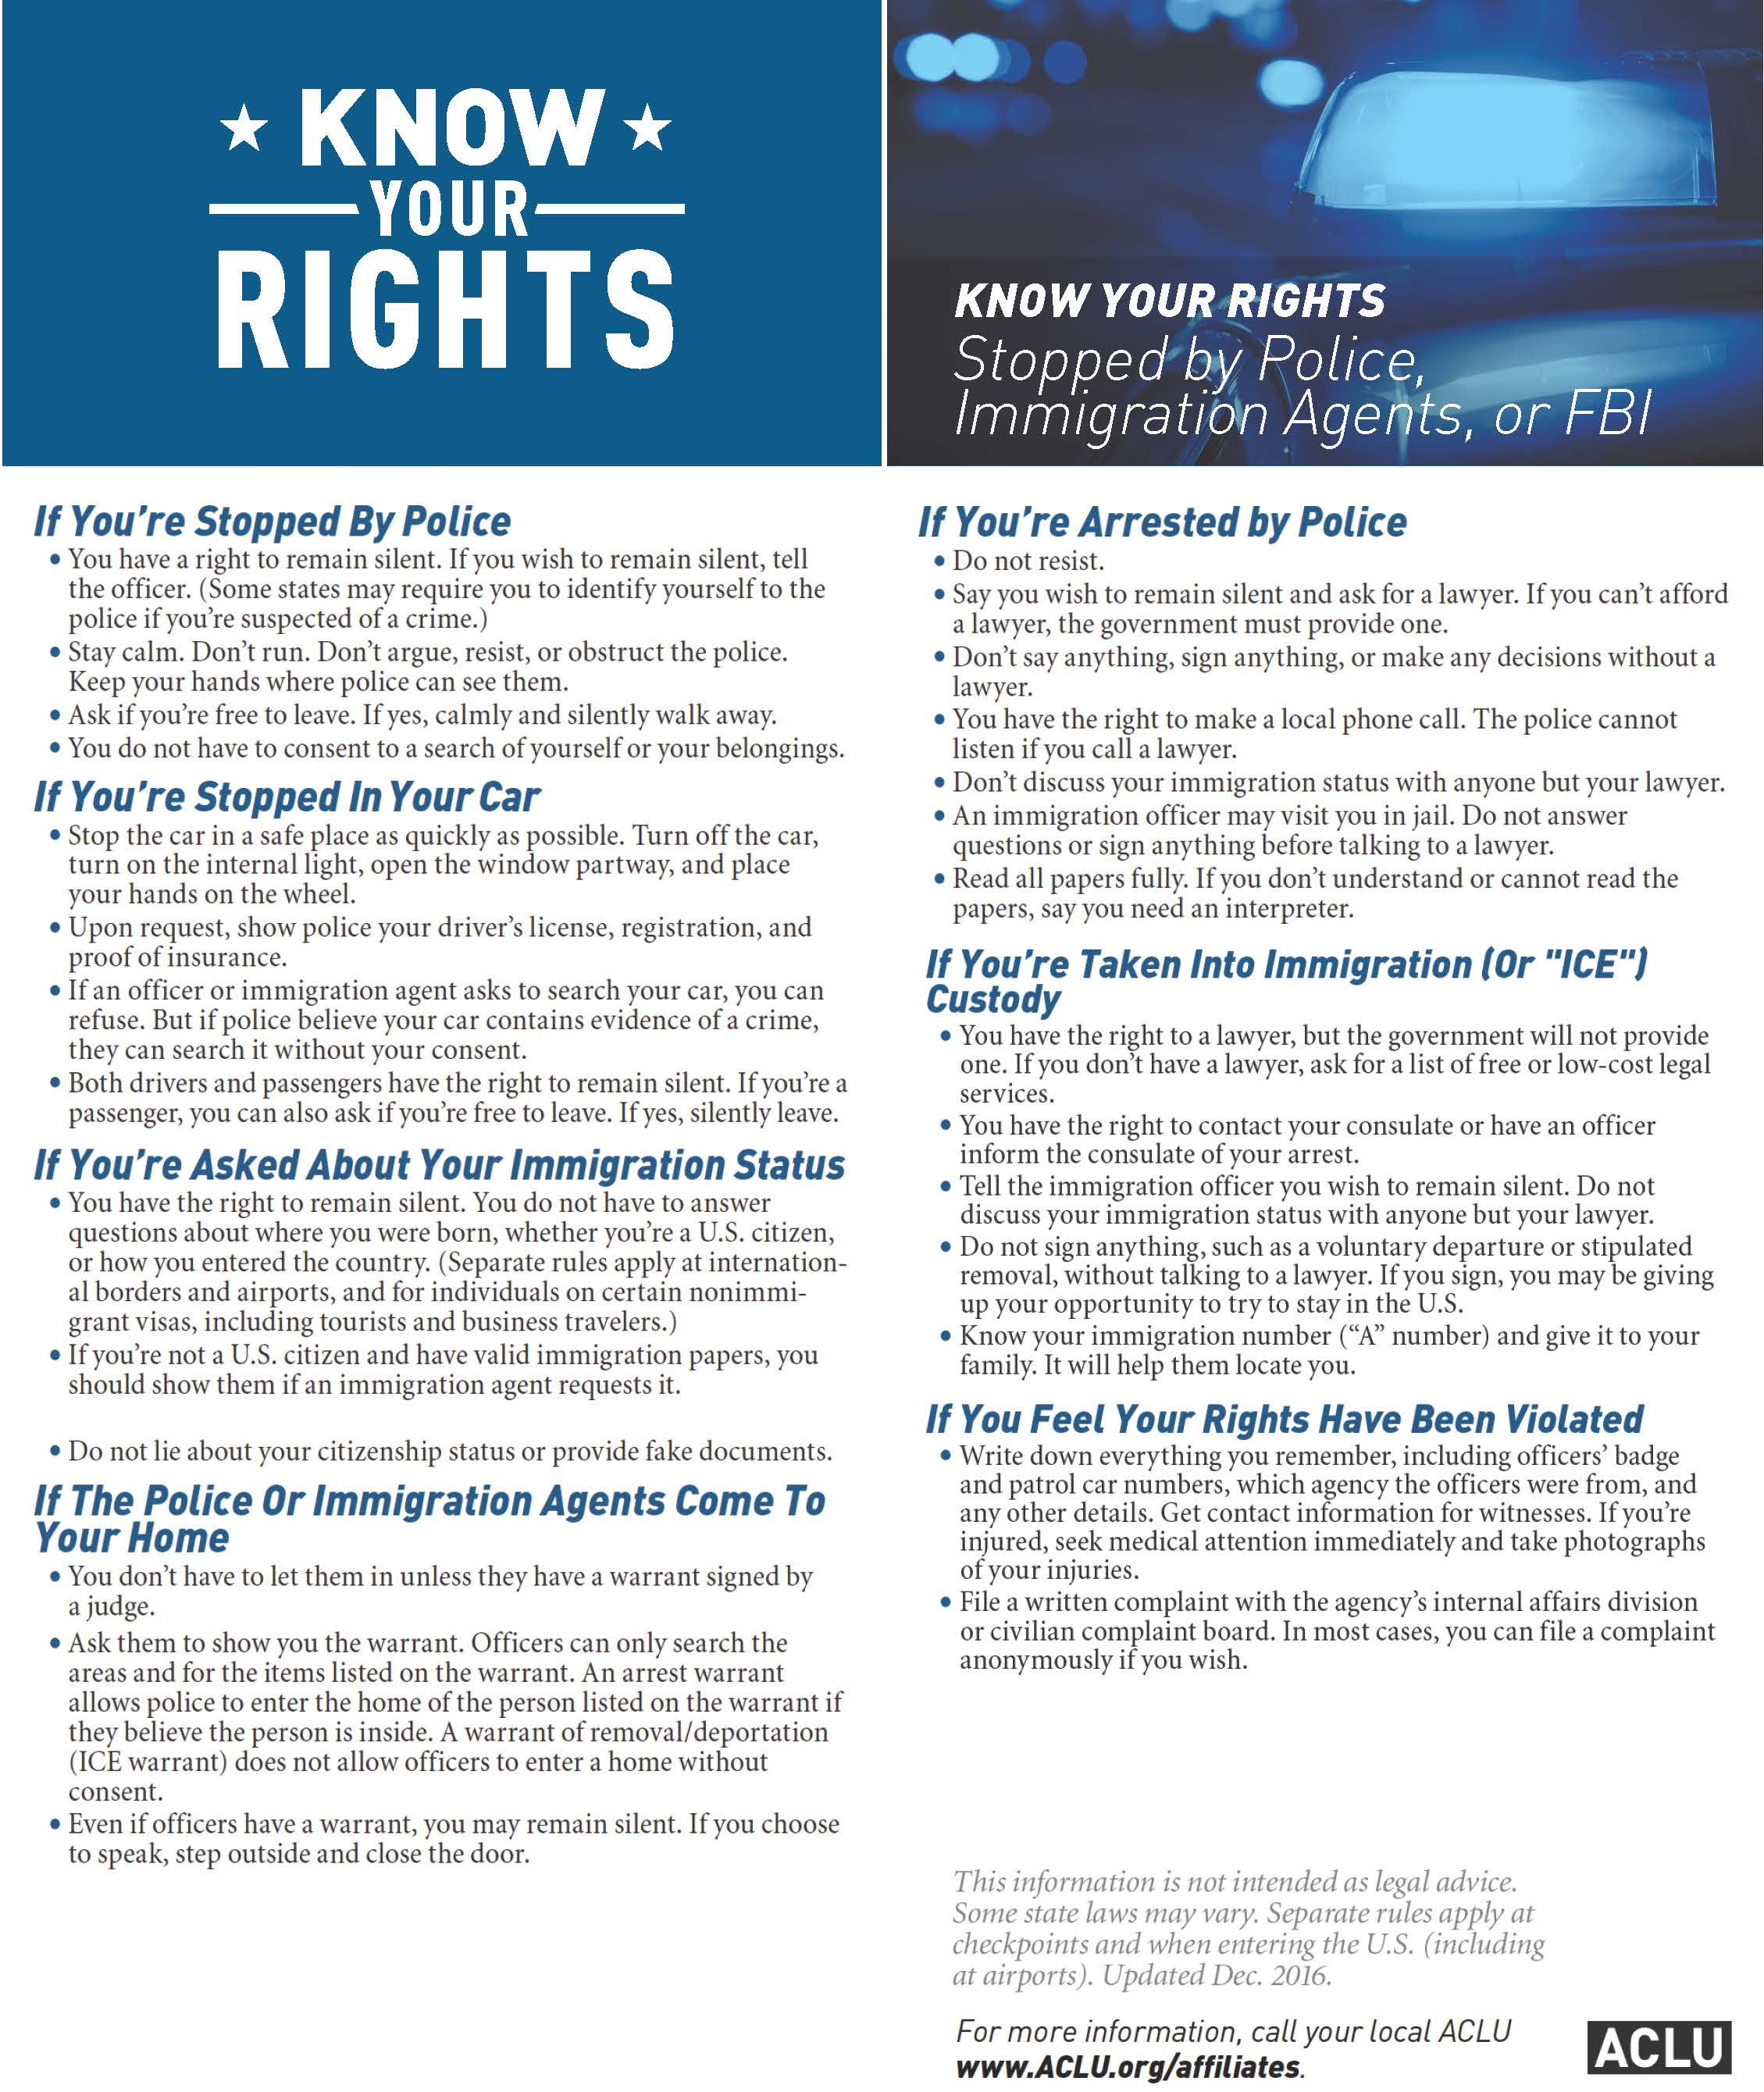 "Know your rights: Stopped by the police, immigration agents, or the FBI. If you're stopped by the police: You have the right to remain silent. If you wish to remain silent, tell the officer. (Some states may require you to identify yourself to the police if you're suspected of a crime); Stay calm. Don't run. Don't argue, resist, or obstruct the police. Keep your hands where police can see them; Ask if you're free to leave. If yes, calmly and silently walk away; You do not have to consent to a search of yourself or your belongings. If you're stopped in your car: Stop the car in a safe place as quickly as possible. Turn off the car, turn on the internal light, open the window partway, and place your hands on the wheel; Upon request, show police your driver's license, registration, and proof of insurance; If an officer or immigration agent asks to search your car, you can refuse. But if police believe your car contains evidence of a crime, they can search it without your consent; Both drivers and passengers have the right to remain silent. If you're a passenger, you can ask if you're free to leave. If yes, silently leave. If you're asked about your immigration status: You have the right to remain silent. You do not have to answer questions about where you were born, whether you're a U.S. citizen, or how you entered the country. (separate rules apply at international borders and airports, and for individuals on certain nonimmigrant visas, including tourists and business travelers); If you're not a U.S. citizen and have a valid immigration papers, you should show them if an immigration agent requests it; Do not lie about your citizenship status or provide fake documents. If the police or immigration agents come to your home: You don't have to let them in unless they have a warrant signed by a judge; Ask them to show you the warrant. Officers can only search the areas and for the items listed on the warrant. An arrest warrant allows the police to enter the home of the person listed on the warrant if they believe the person is inside. A warrant of removal/deportation (ICE warrant) does not allow officers to enter the home without consent; Even if officers have a warrant, you may remain silent. If you choose to speak, step outside and close the door. If you're arrested by police: Do not resist; Say you wish to remain silent and ask for a lawyer. If you can't afford a lawyer, the government must provide one; Don't say anything, sign anything, or make any decisions without a lawyer; You have the right to make a local phone call. The police cannot listen if you call a lawyer; Don't discuss you immigration status with anyone but your lawyer; An immigration officer may visit you in jail. Do not answer questions or sign anything before talking to a lawyer; Read all papers fully. If you don't understand or cannot read the papers, say you need an interpreter. If you're taken into immigration (or ICE) custody: You have the right to a lawyer, but the government will not provide one. If you don't have a lawyer, ask for a list of free or low-cost legal services; You have the right to contact your consulate or have an officer inform the consulate of your arrest; Tell the immigration officer you wish to remain silent. Do not discuss your immigration status with anyone but your lawyer; Do not sign anything, such as a voluntary departure or stipulated removal, without talking to a lawyer. If you sign, you may be giving up your opportunity to try to stay in the U.S.;Know your immigration number (""A"" number) and give it to your family. It will help them locate you. If you feel your rights have been violated: Write down everything you remember, including officer's badge and patrol car numbers, which agency the officers were from, and any other details. Get contact information for witnesses. If you're injured, seek medical attention immediately and take photographs of your injuries; File a written complaint with the agency's internal affairs division or civilian complaint board. In most cases, you can file a complaint anonymously if you wish. This information is not intended as legal advice. Some state laws may vary. Separate rules apply at checkpoints and when entering the U.S. (including at airports). Updated Dec. 2016. For more information, call your local ACLU www.ACLU.org/affiliates."